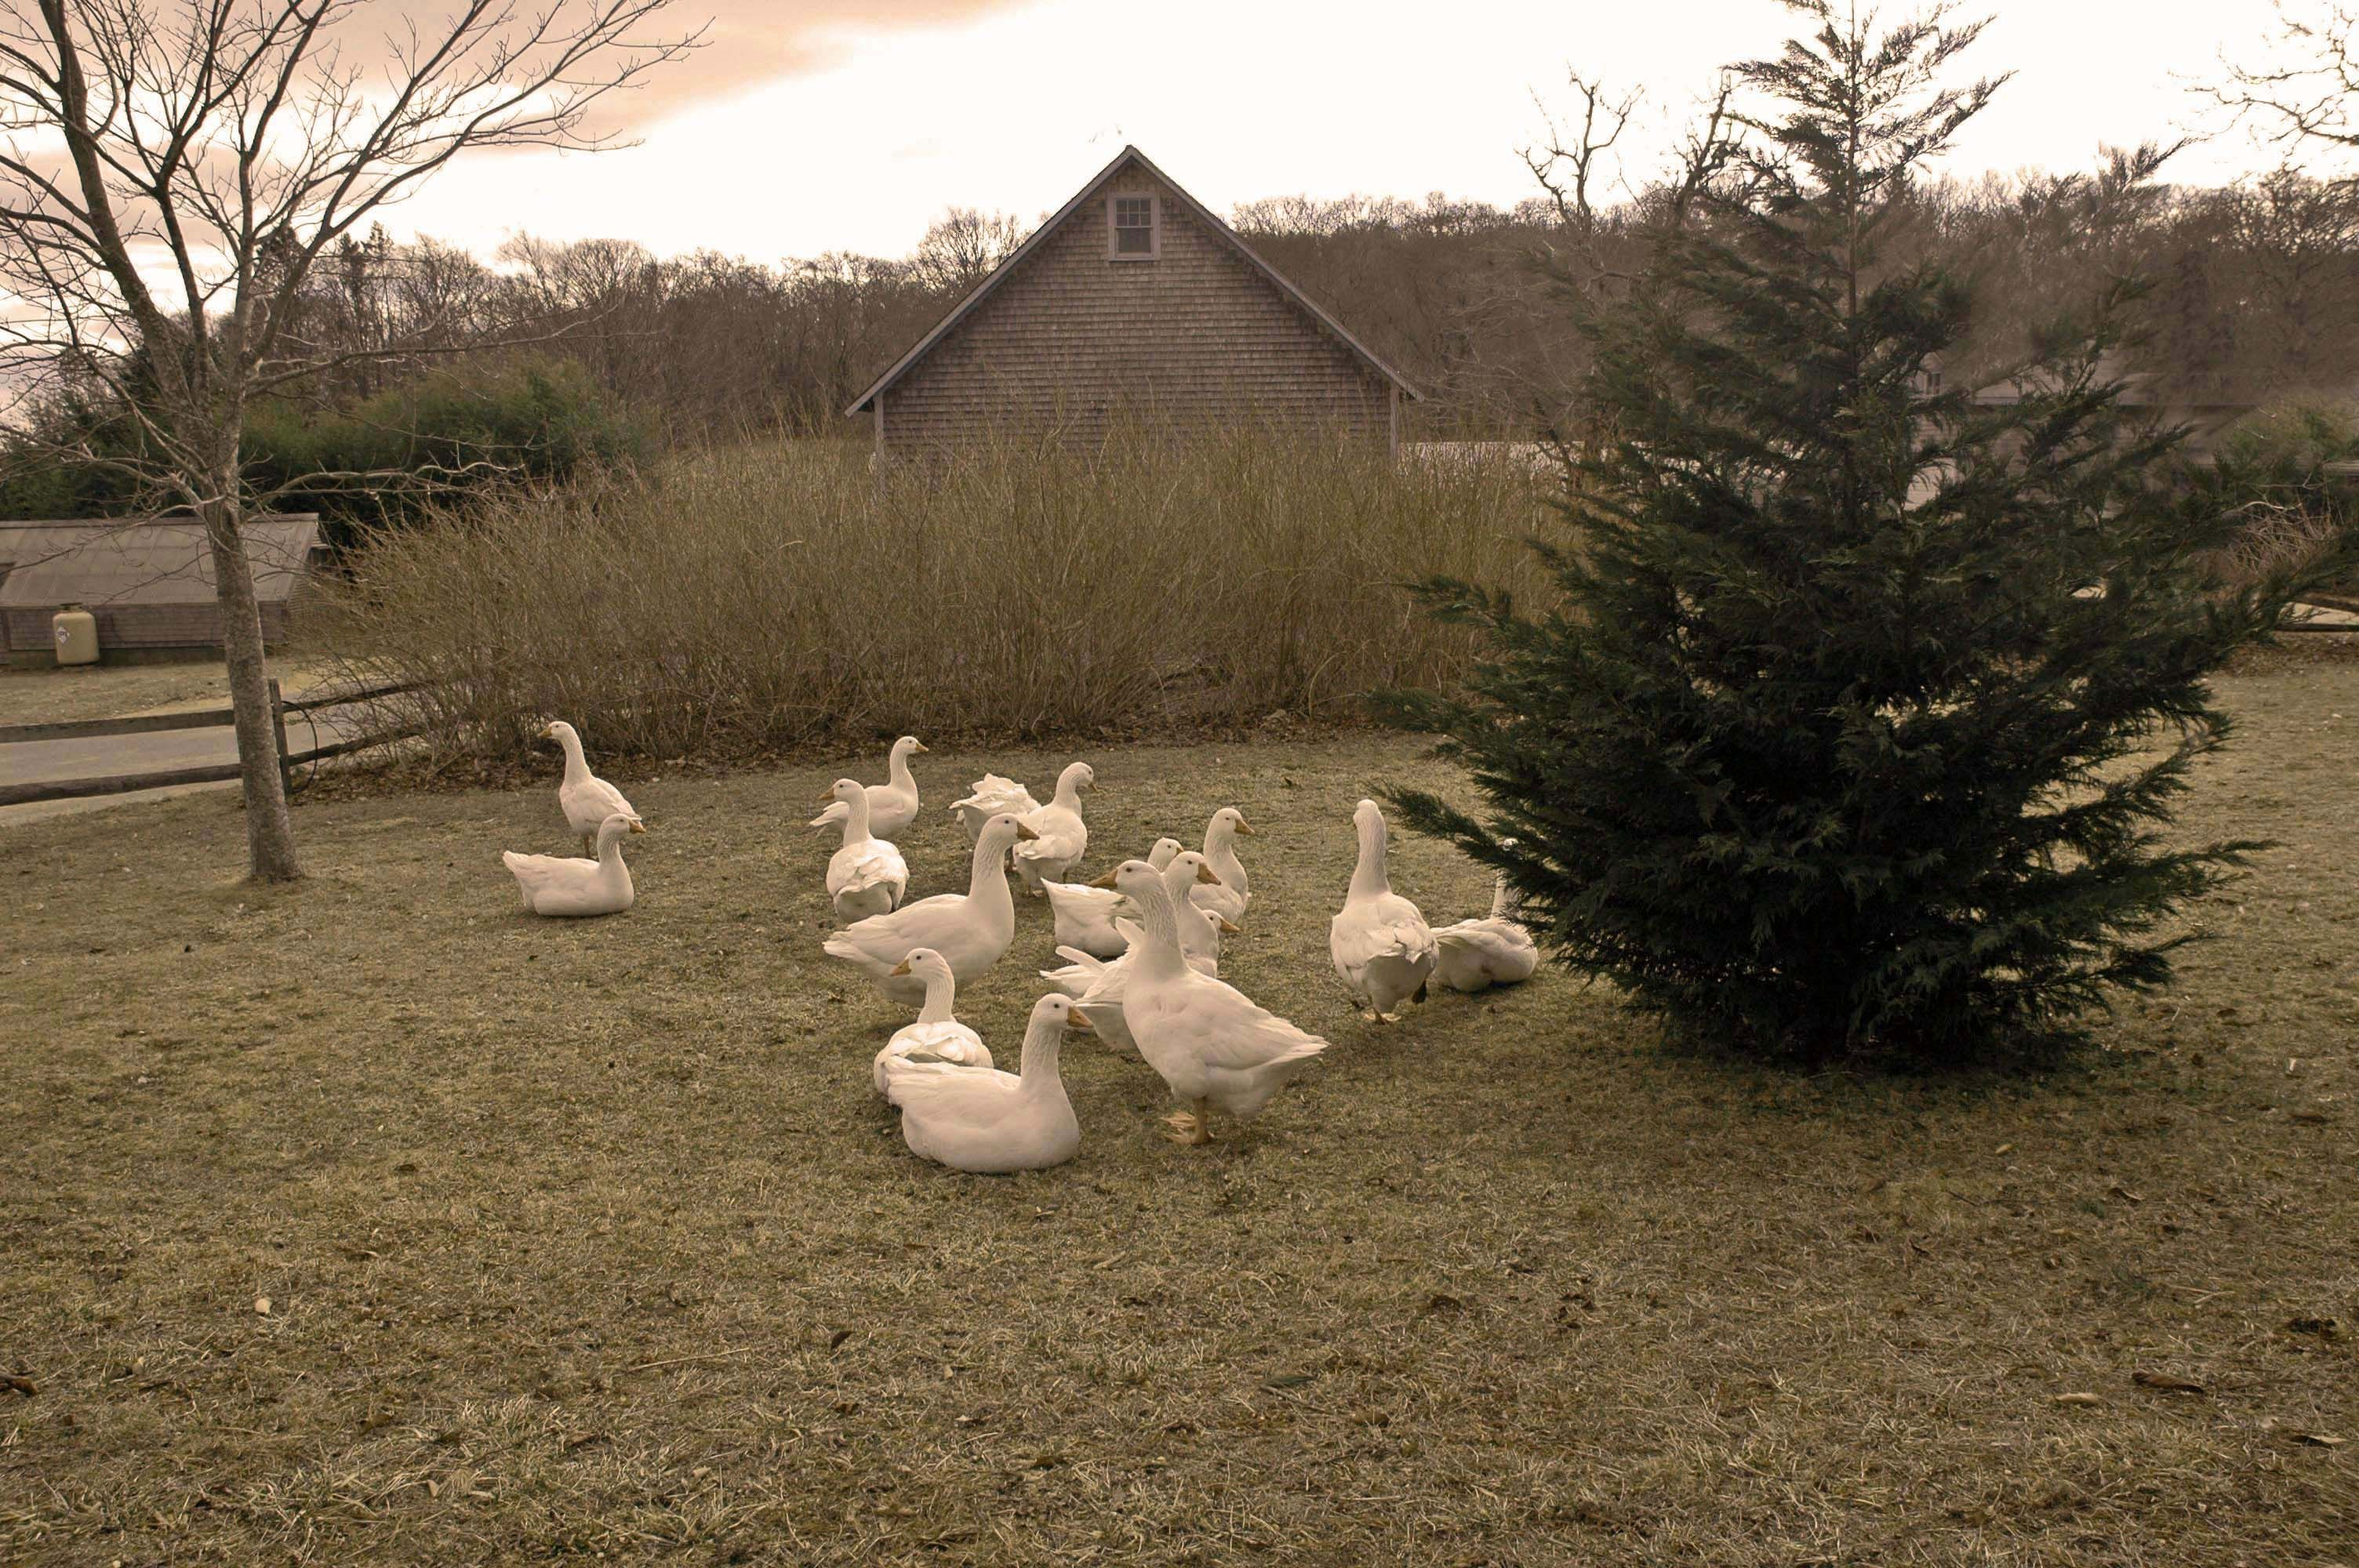 """And geese with idle gabble never oer""  Winter Evening by John Clare (1793 - 1864).  An afternoon walk in West Tisbury."